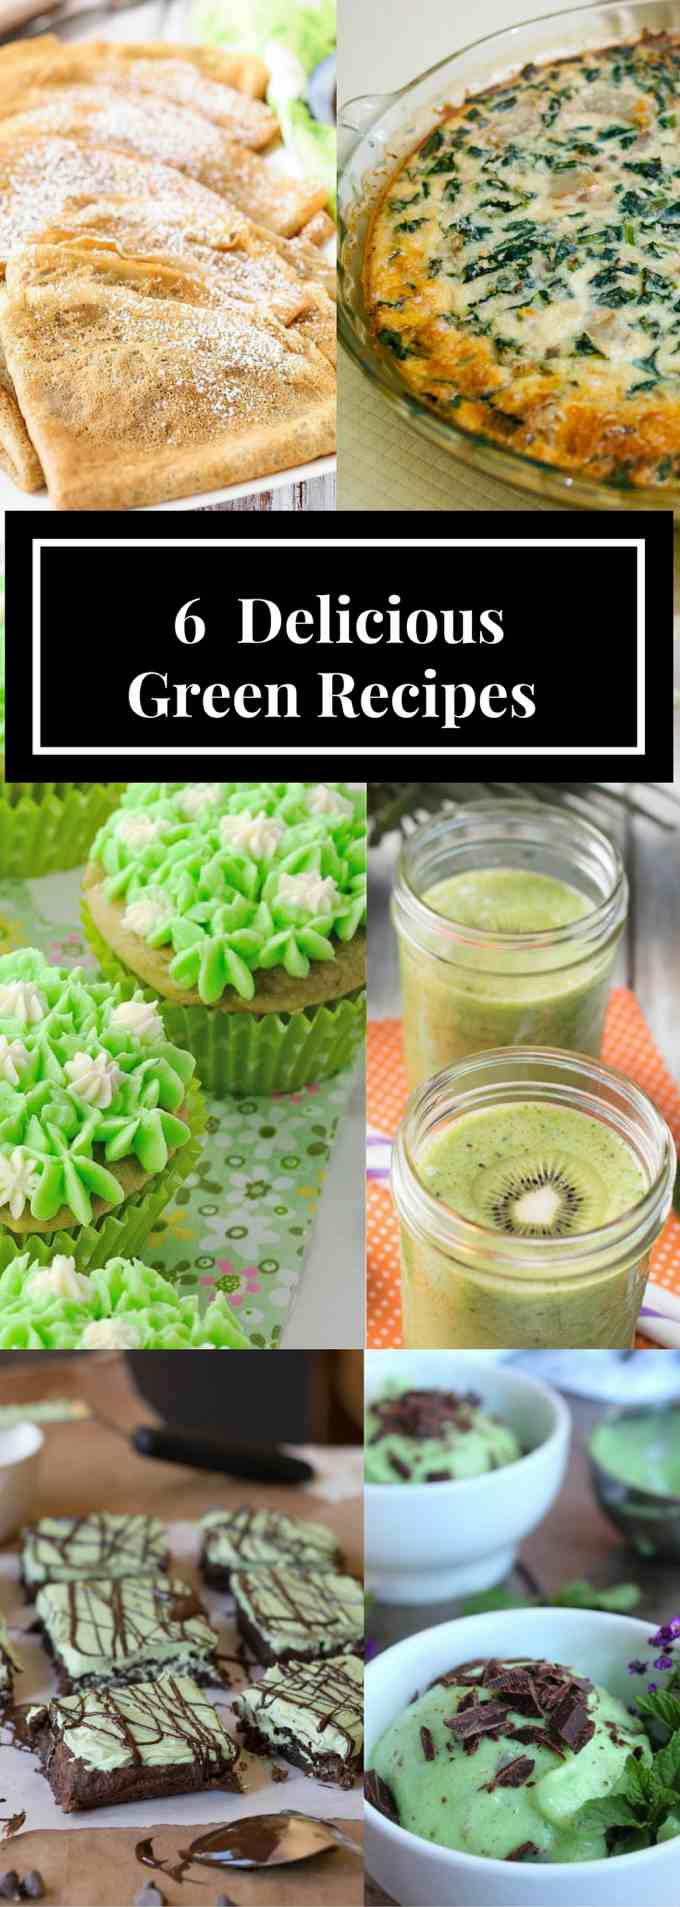 #FoodBlogGenius March Collaboration - Green Recipes pin image collage.